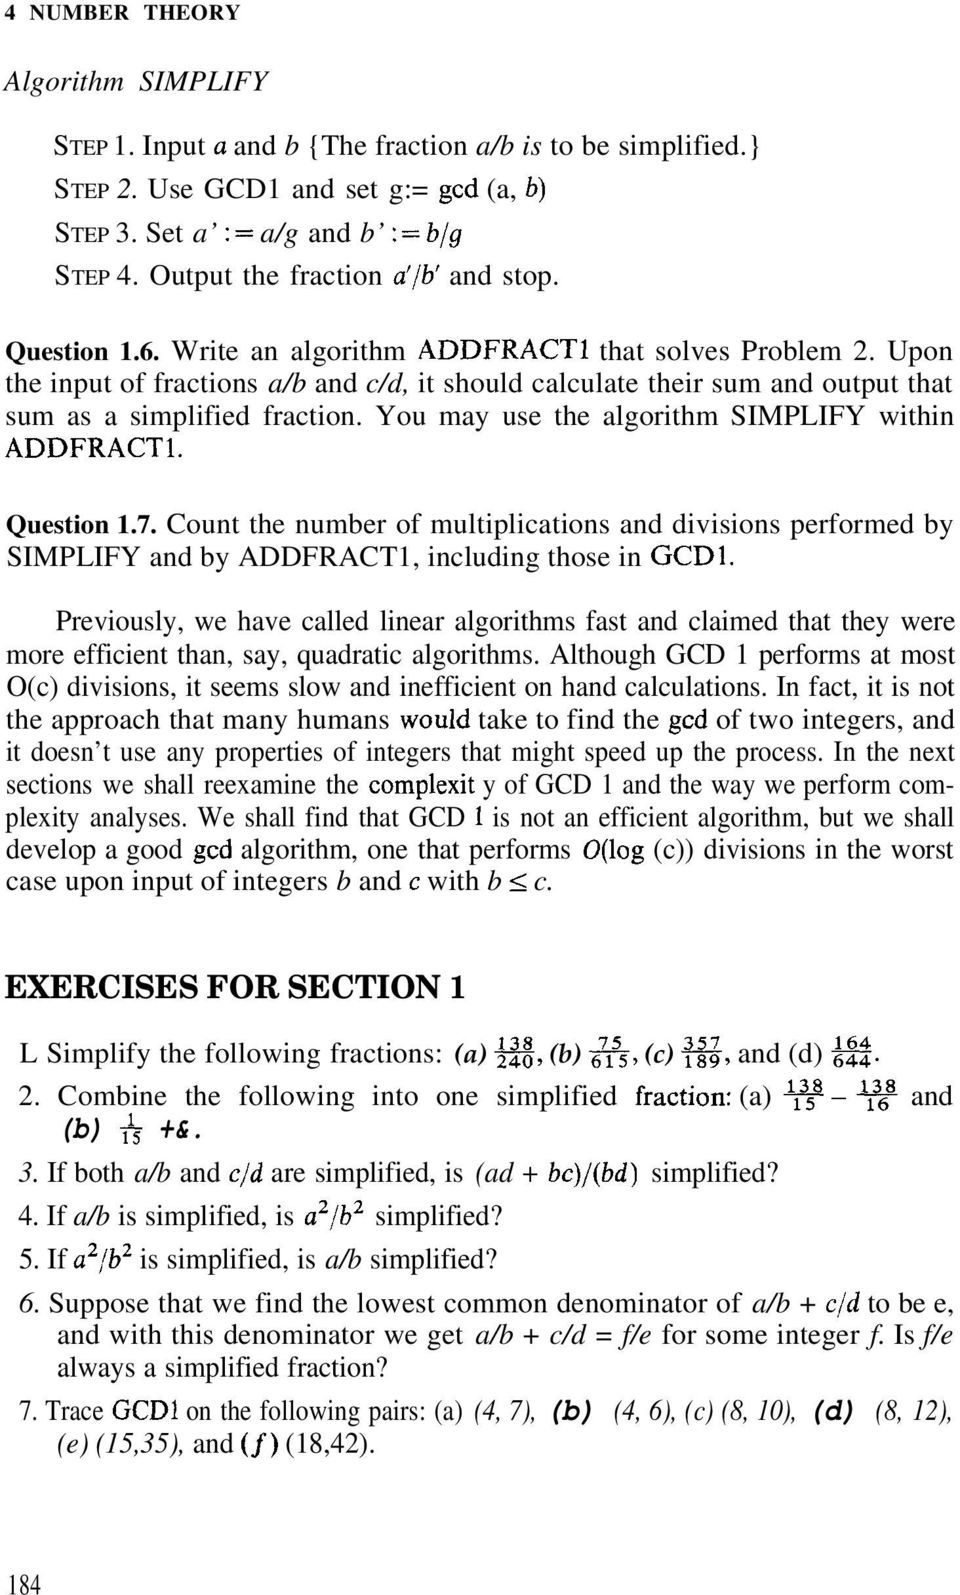 Upon the input of fractions a/b and c/d, it should calculate their sum and output that sum as a simplified fraction. You may use the algorithm SIMPLIFY within ADDFRACT1. Question 1.7.